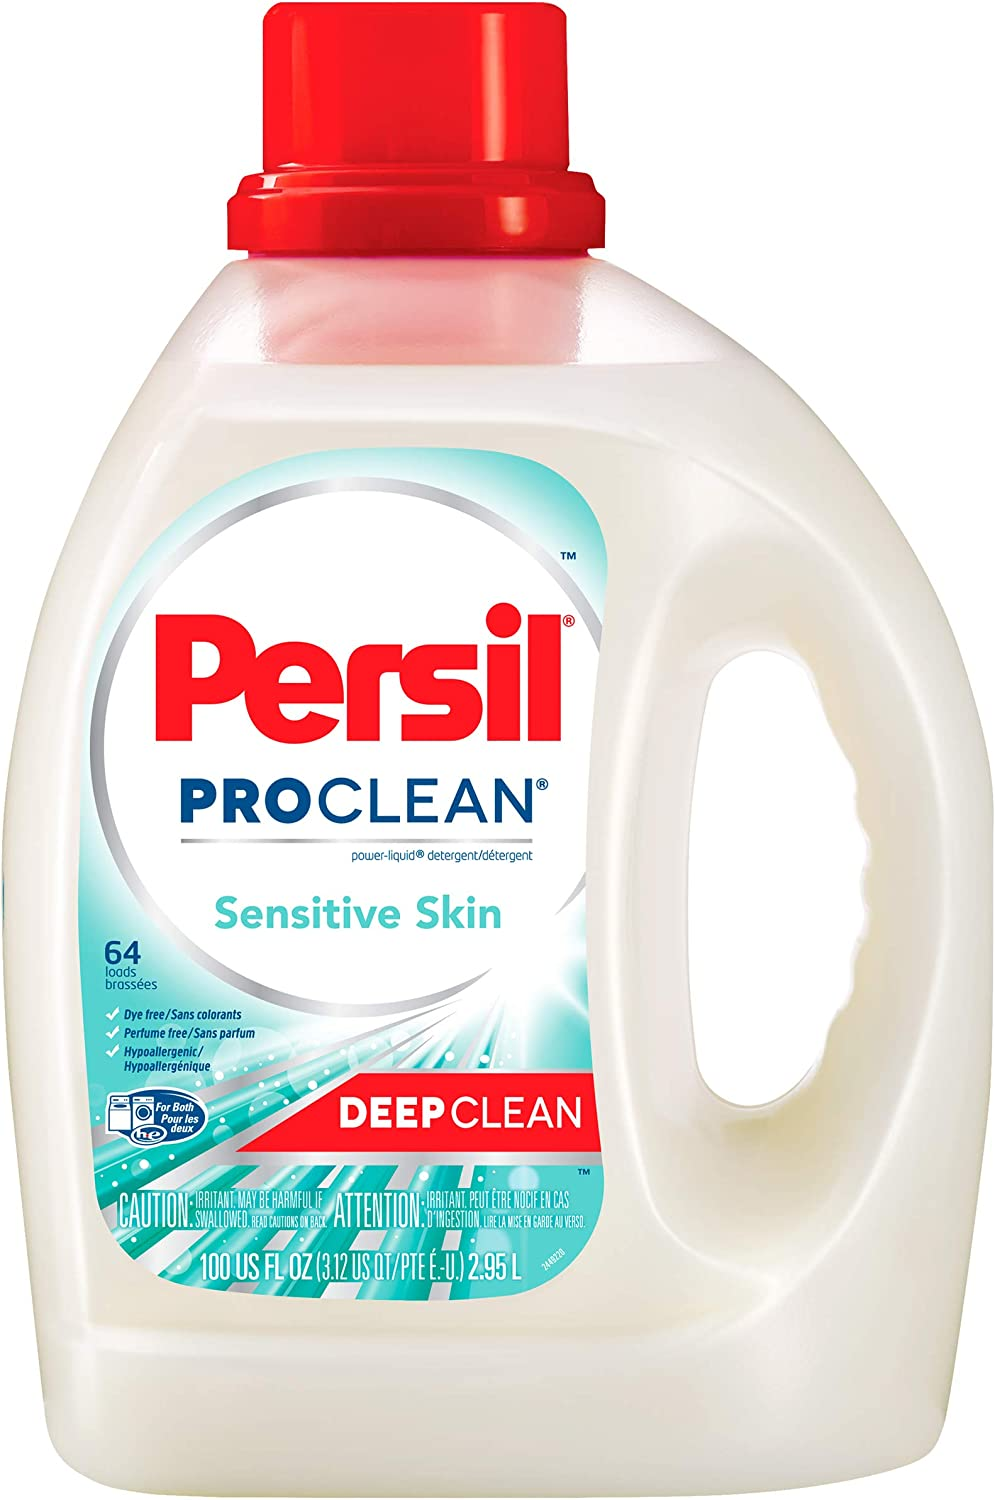 Persil ProClean Power-Liquid Laundry Detergent, Sensitive Skin, 100 Fluid Ounces, 64 Loads